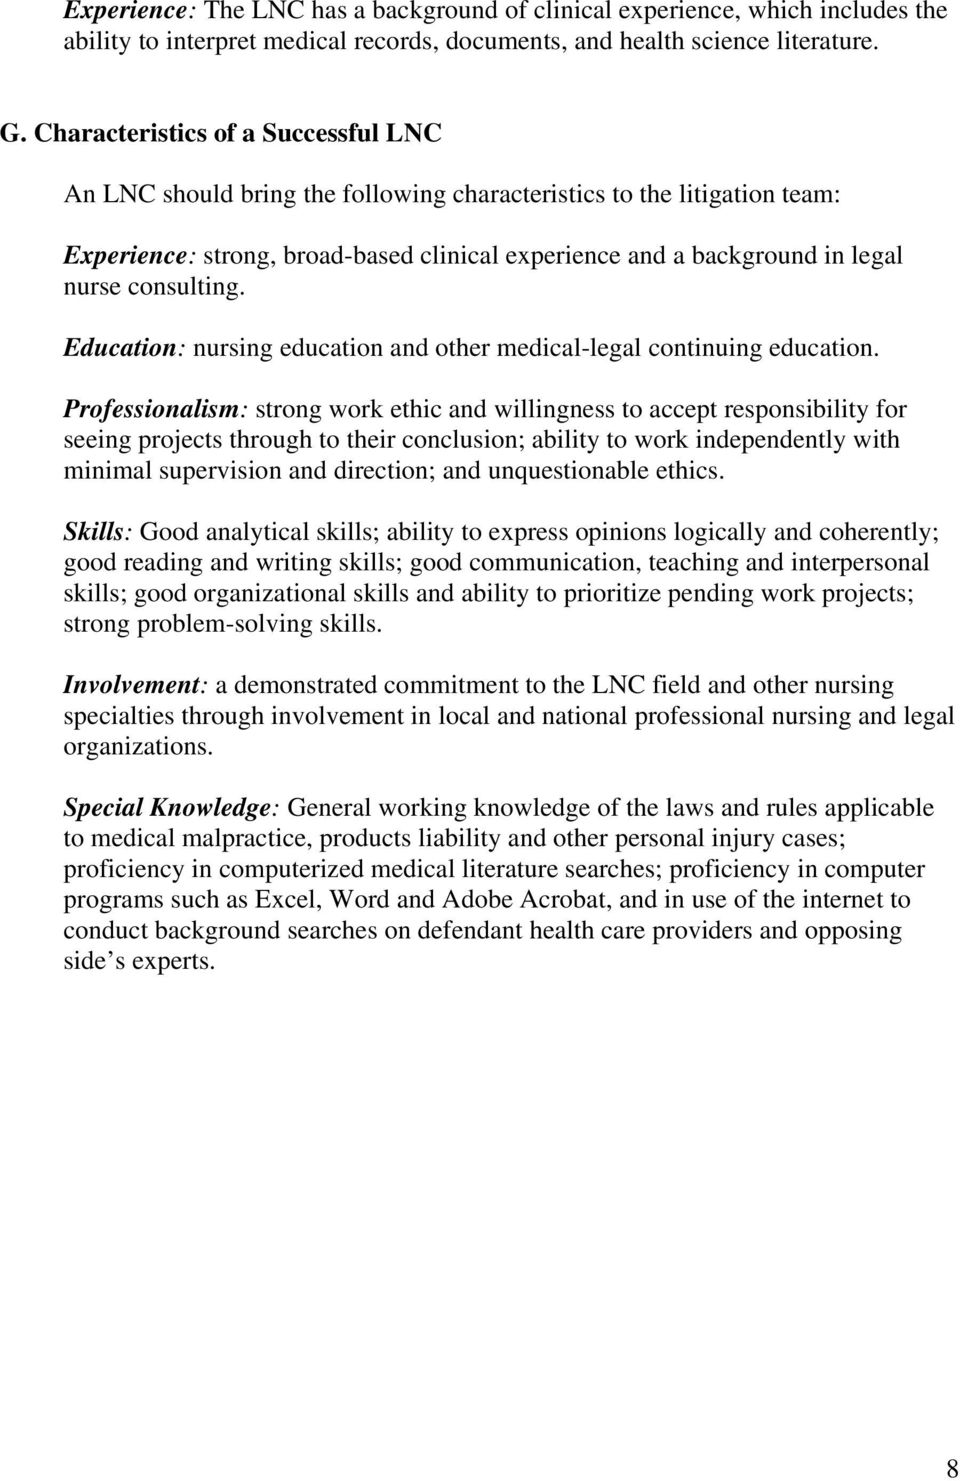 consulting. Education: nursing education and other medical-legal continuing education.